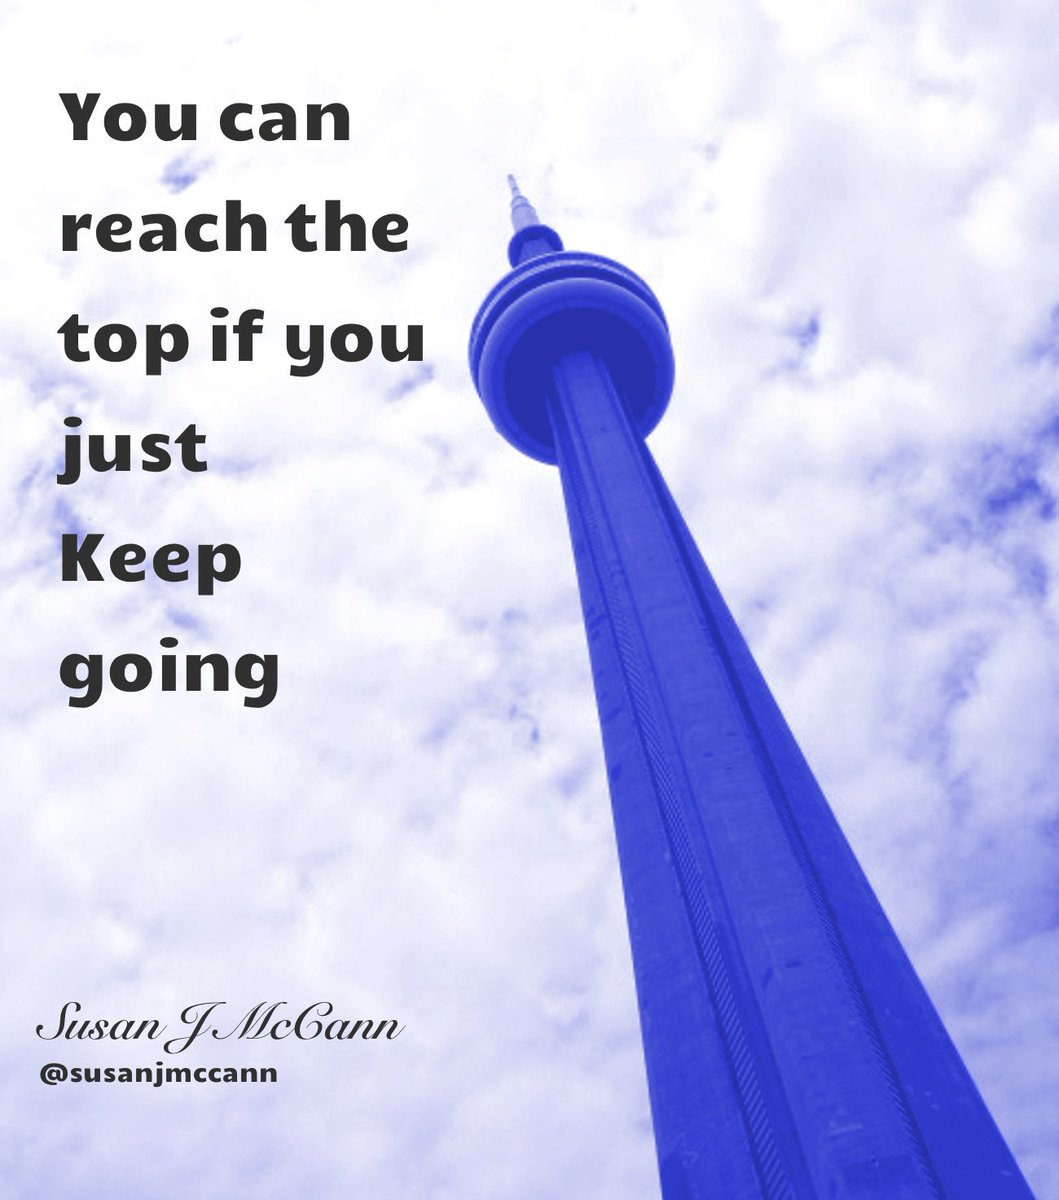 Learn, test, get help, change direction but Keep going  #leadership #personalgrowth <br>http://pic.twitter.com/6RyUOjLQlP